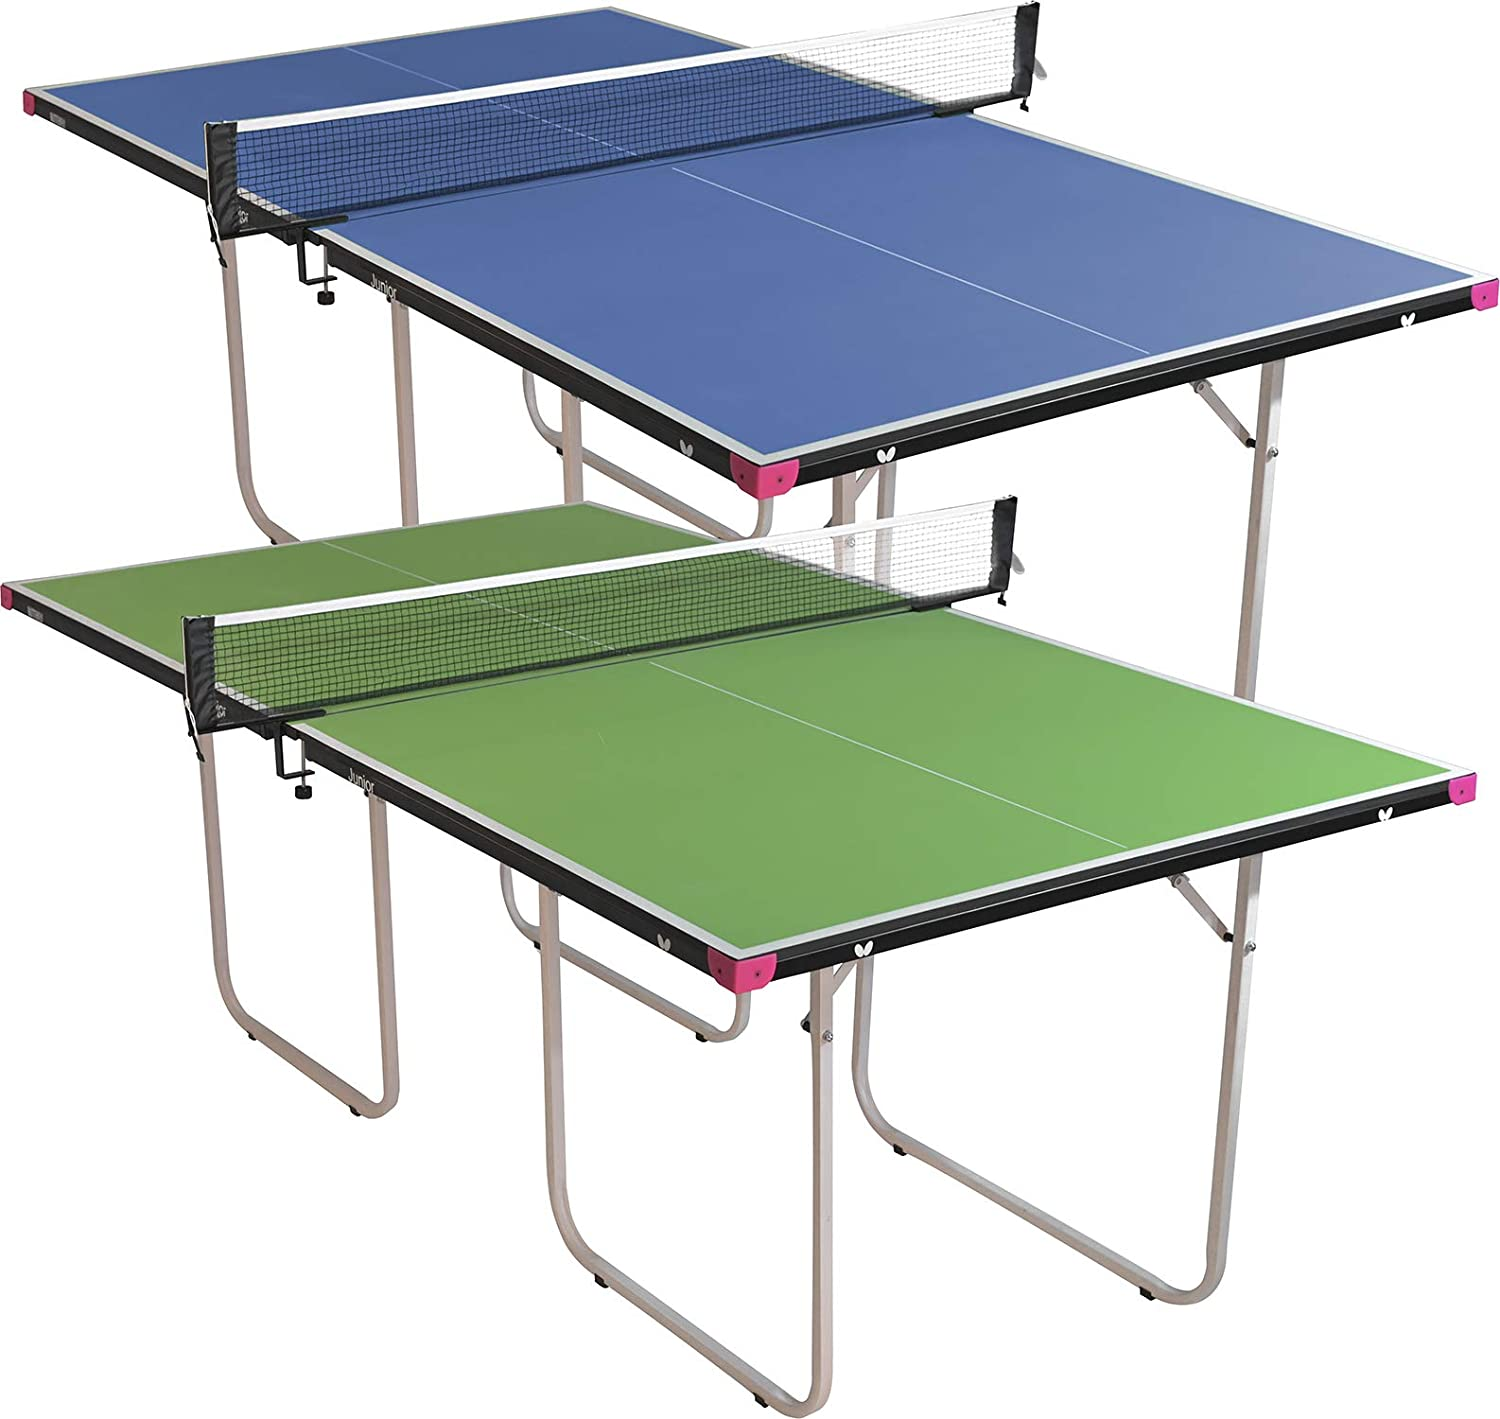 Amazon.com: Butterfly Junior Stationary Ping Pong Table - 3/4 Size Table Tennis Table - Space Saver Game Table for Game Room - Regulation Height Ping Pong Table - Sturdy Frame - Ships